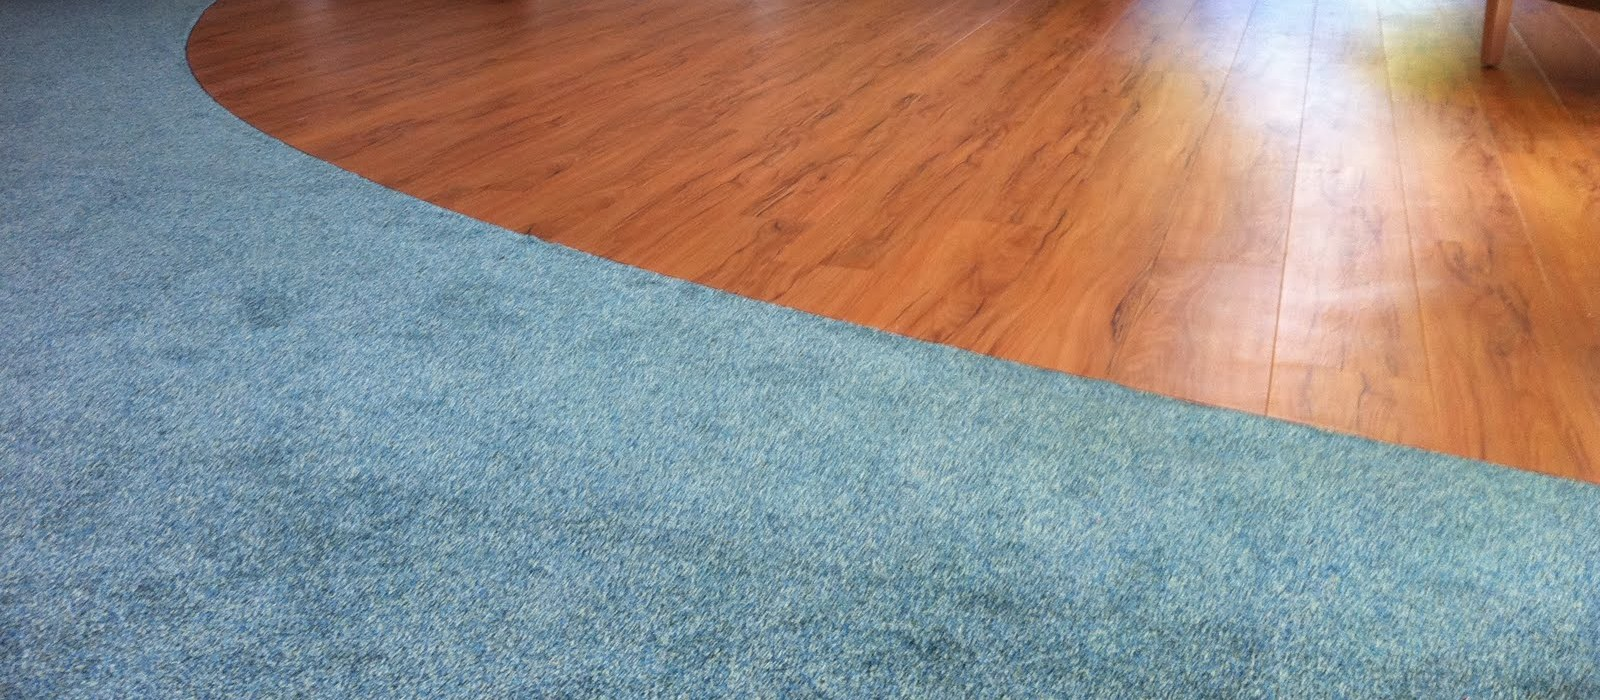 Care Home Carpets